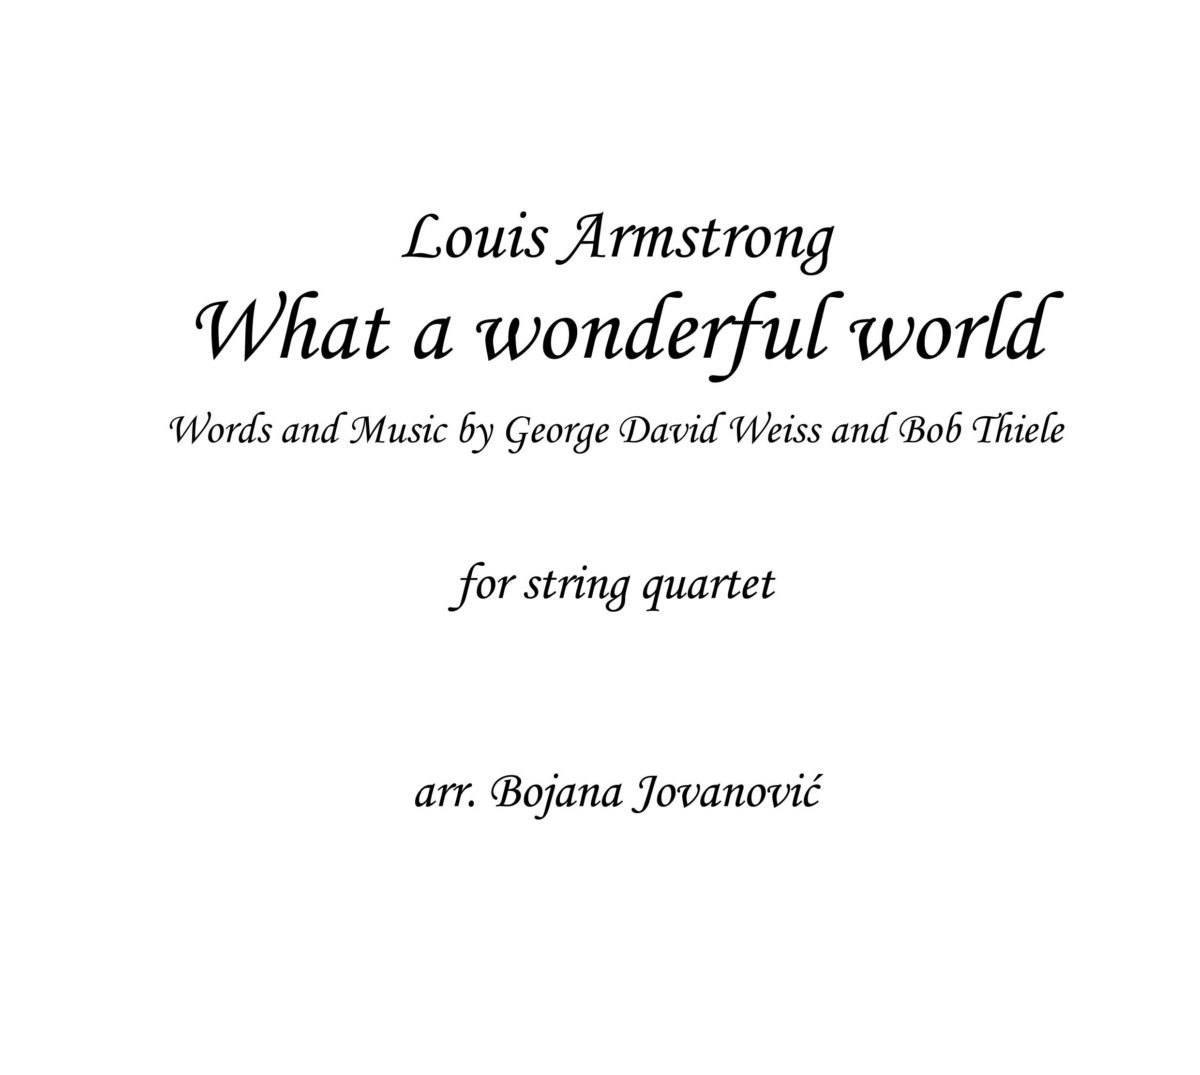 What a wonderful world (Louis Armstrong) - Sheet Music